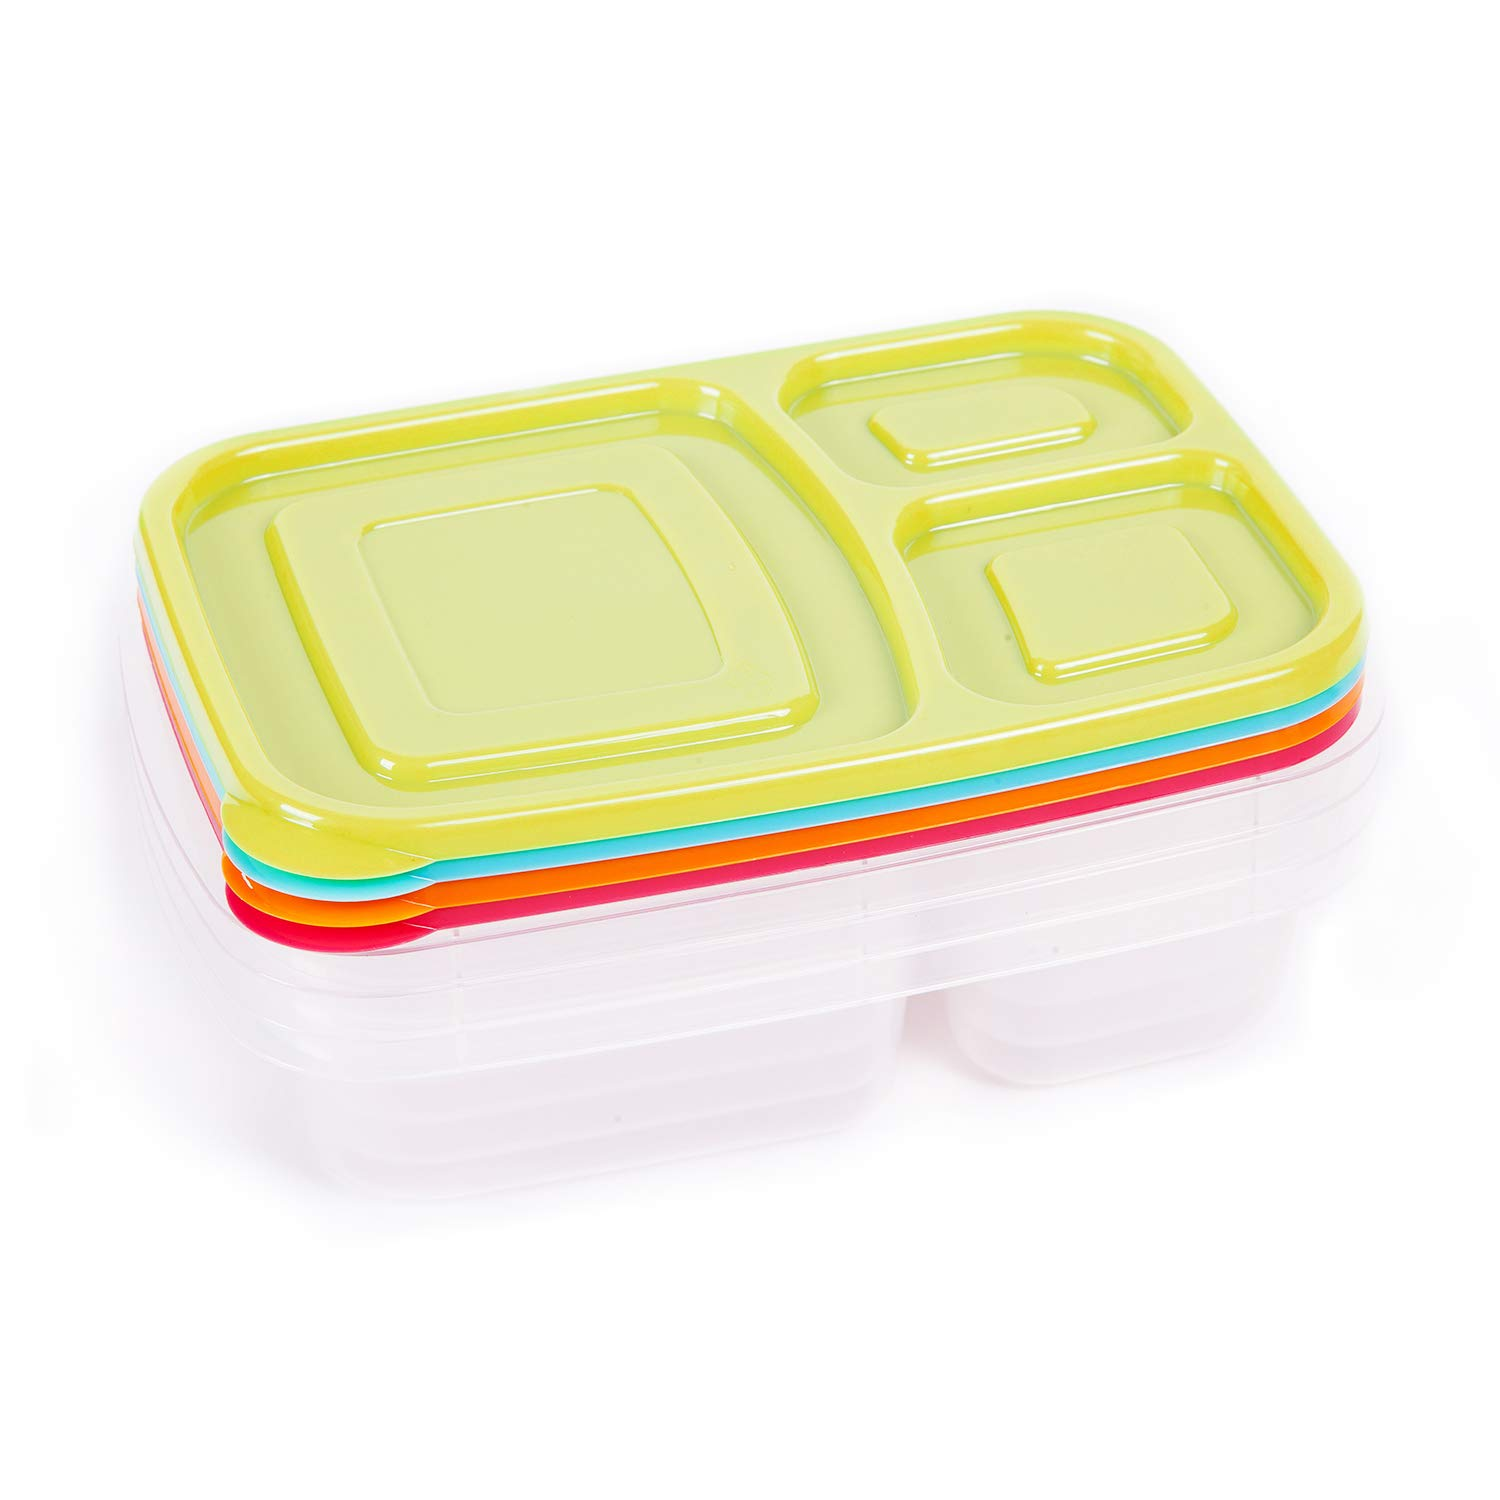 Bento Lunch Boxes 3-Compartment 4 Pack Meal Prep Containers with Lids Portion Control Reusable Food Storage Containers Set Microwave Dishwasher and Freezer Safe